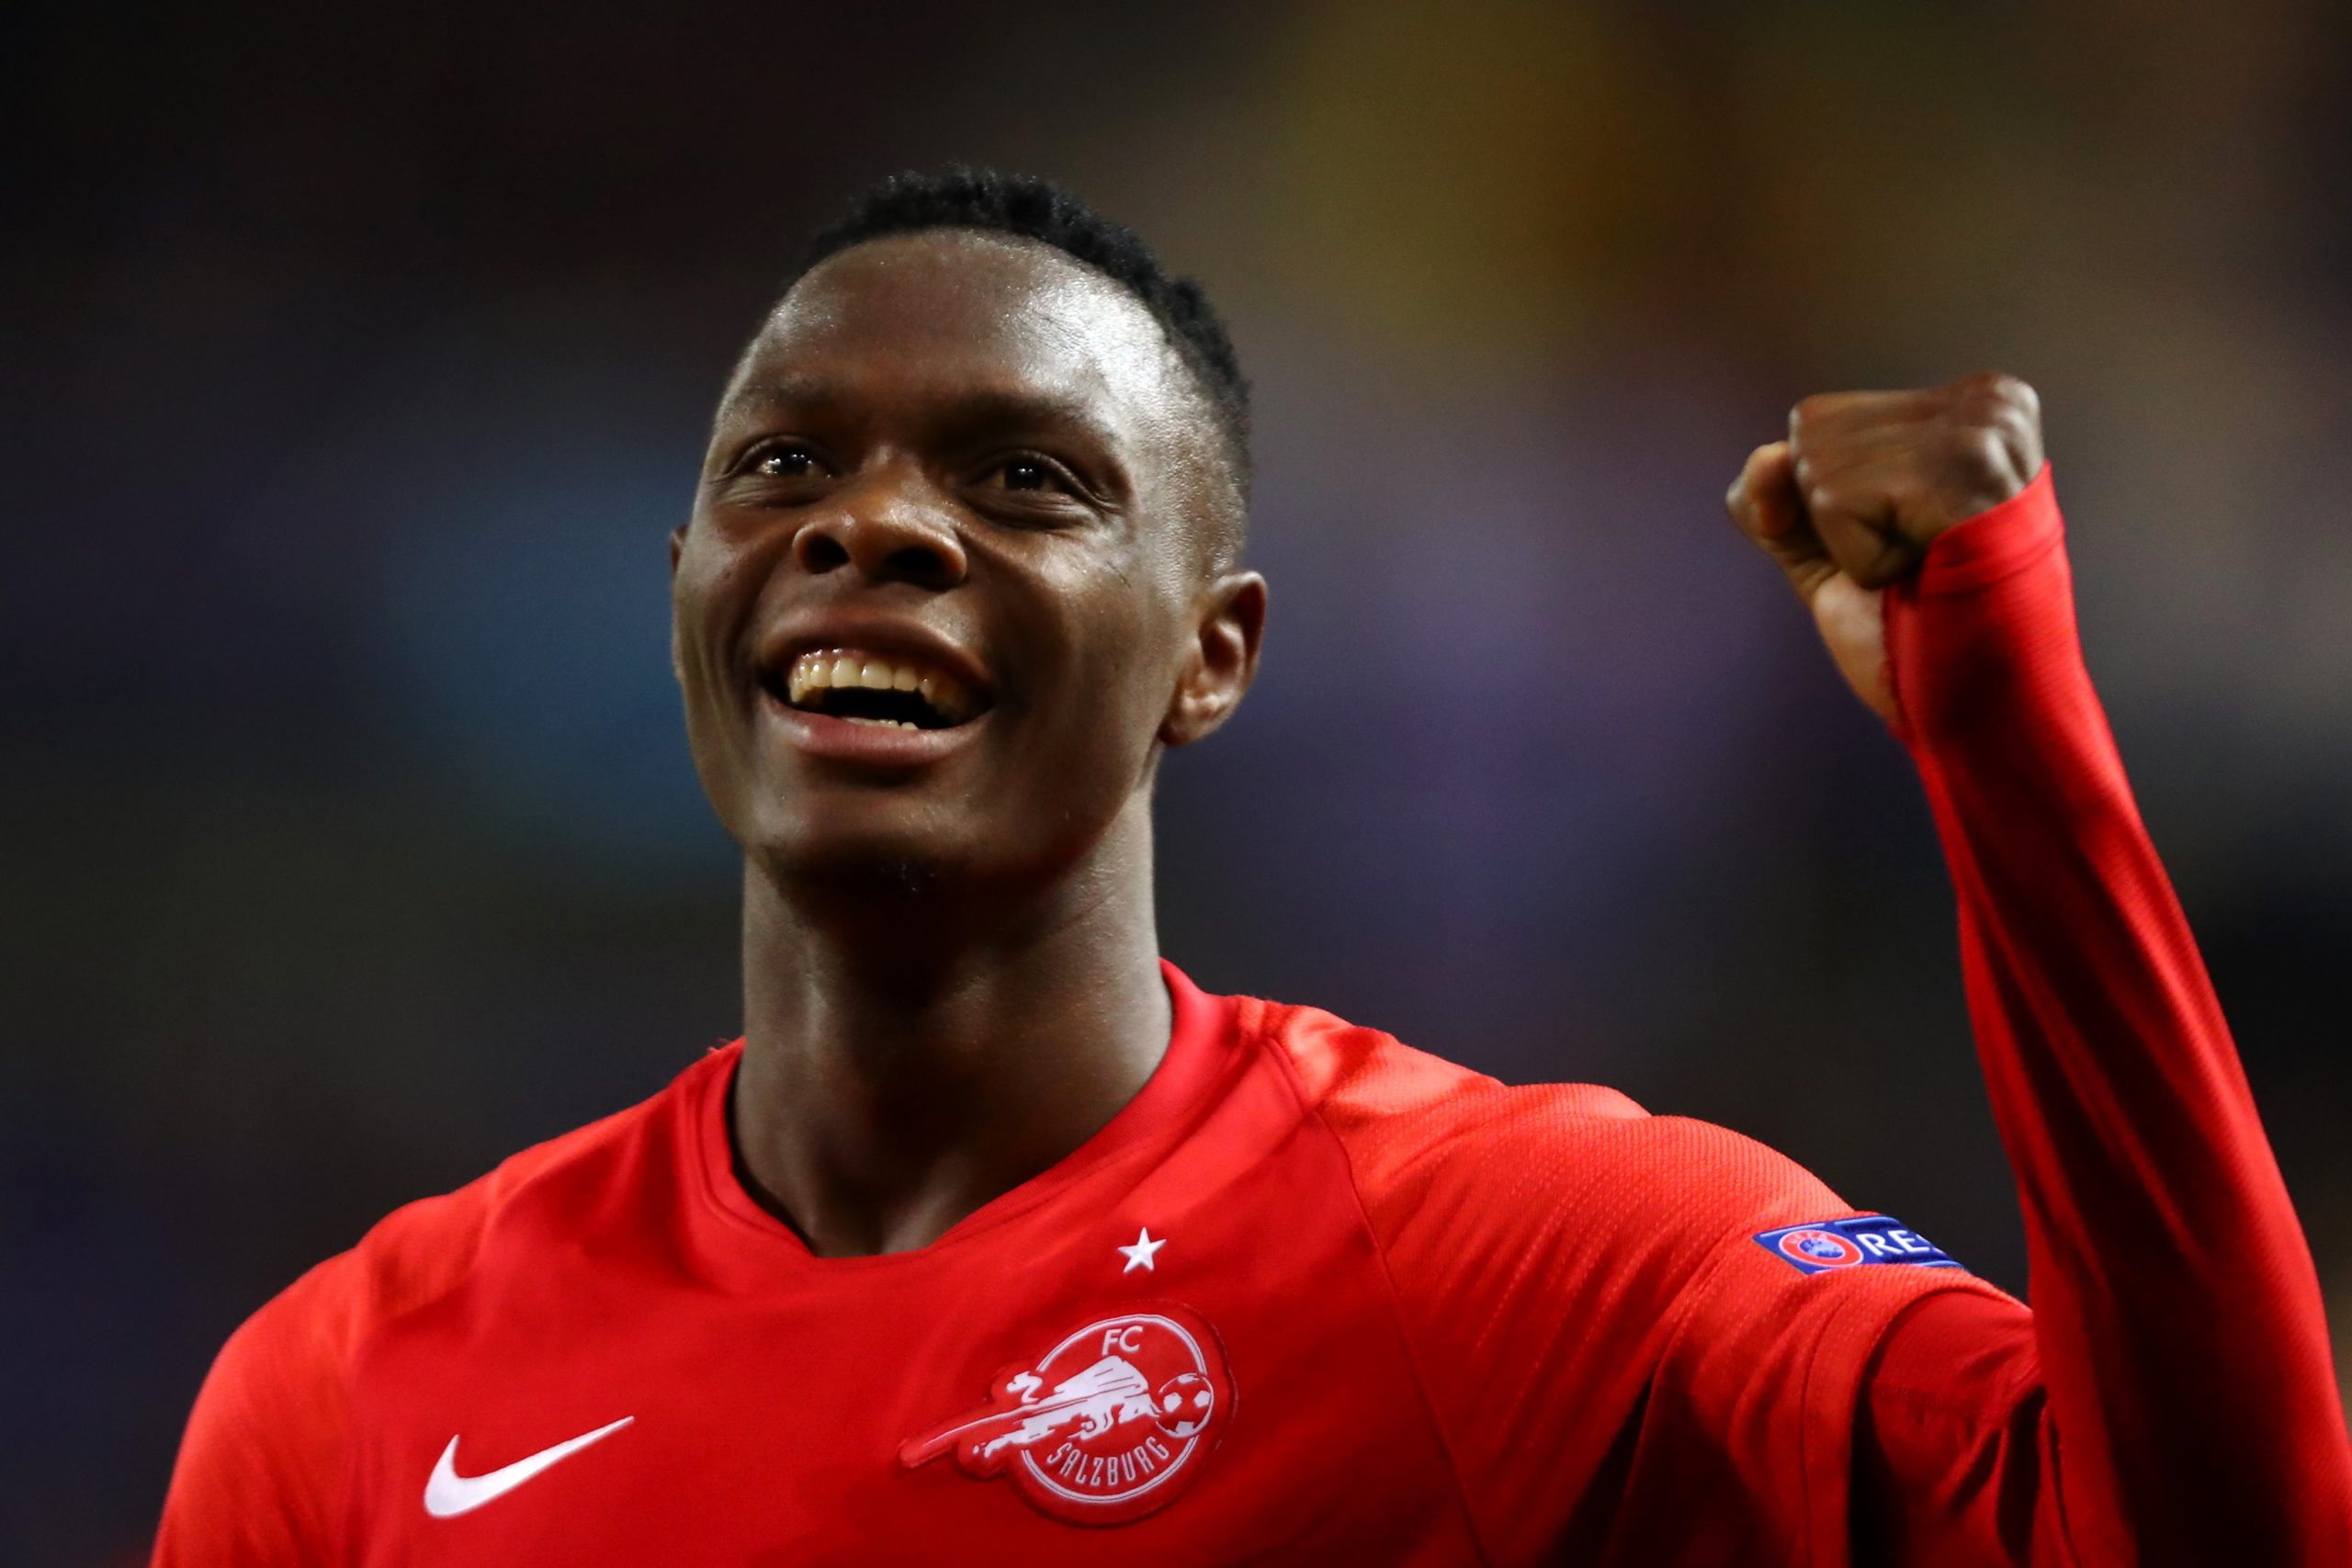 GENK, BELGIUM - NOVEMBER 27: Patson Daka of RB Salzburg celebrates scoring a goal of the game during the UEFA Champions League group E match between KRC Genk and RB Salzburg at Luminus Arena on November 27, 2019 in Genk, Belgium. (Photo by Dean Mouhtaropoulos/Getty Images)